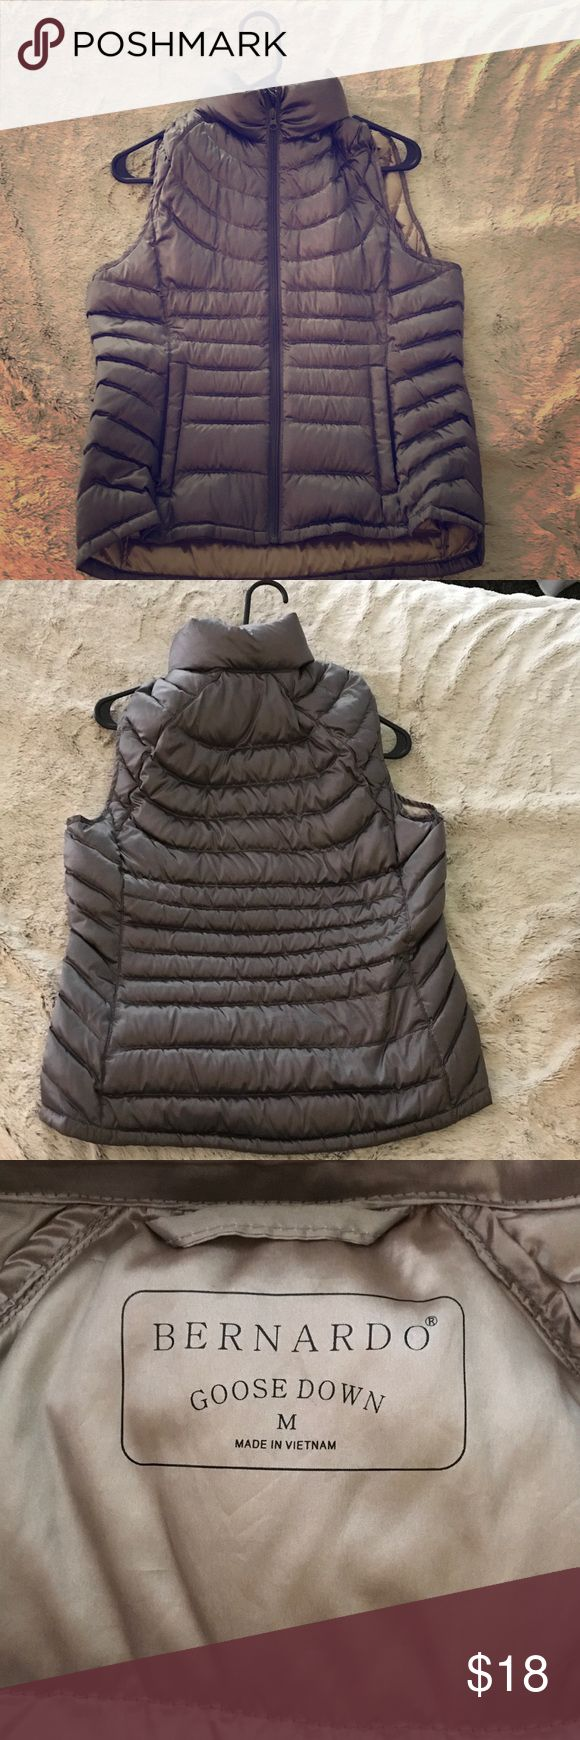 Goose down satin silver vest Lightweight and easy to pack. Worn once on excellent condition Jackets & Coats Vests